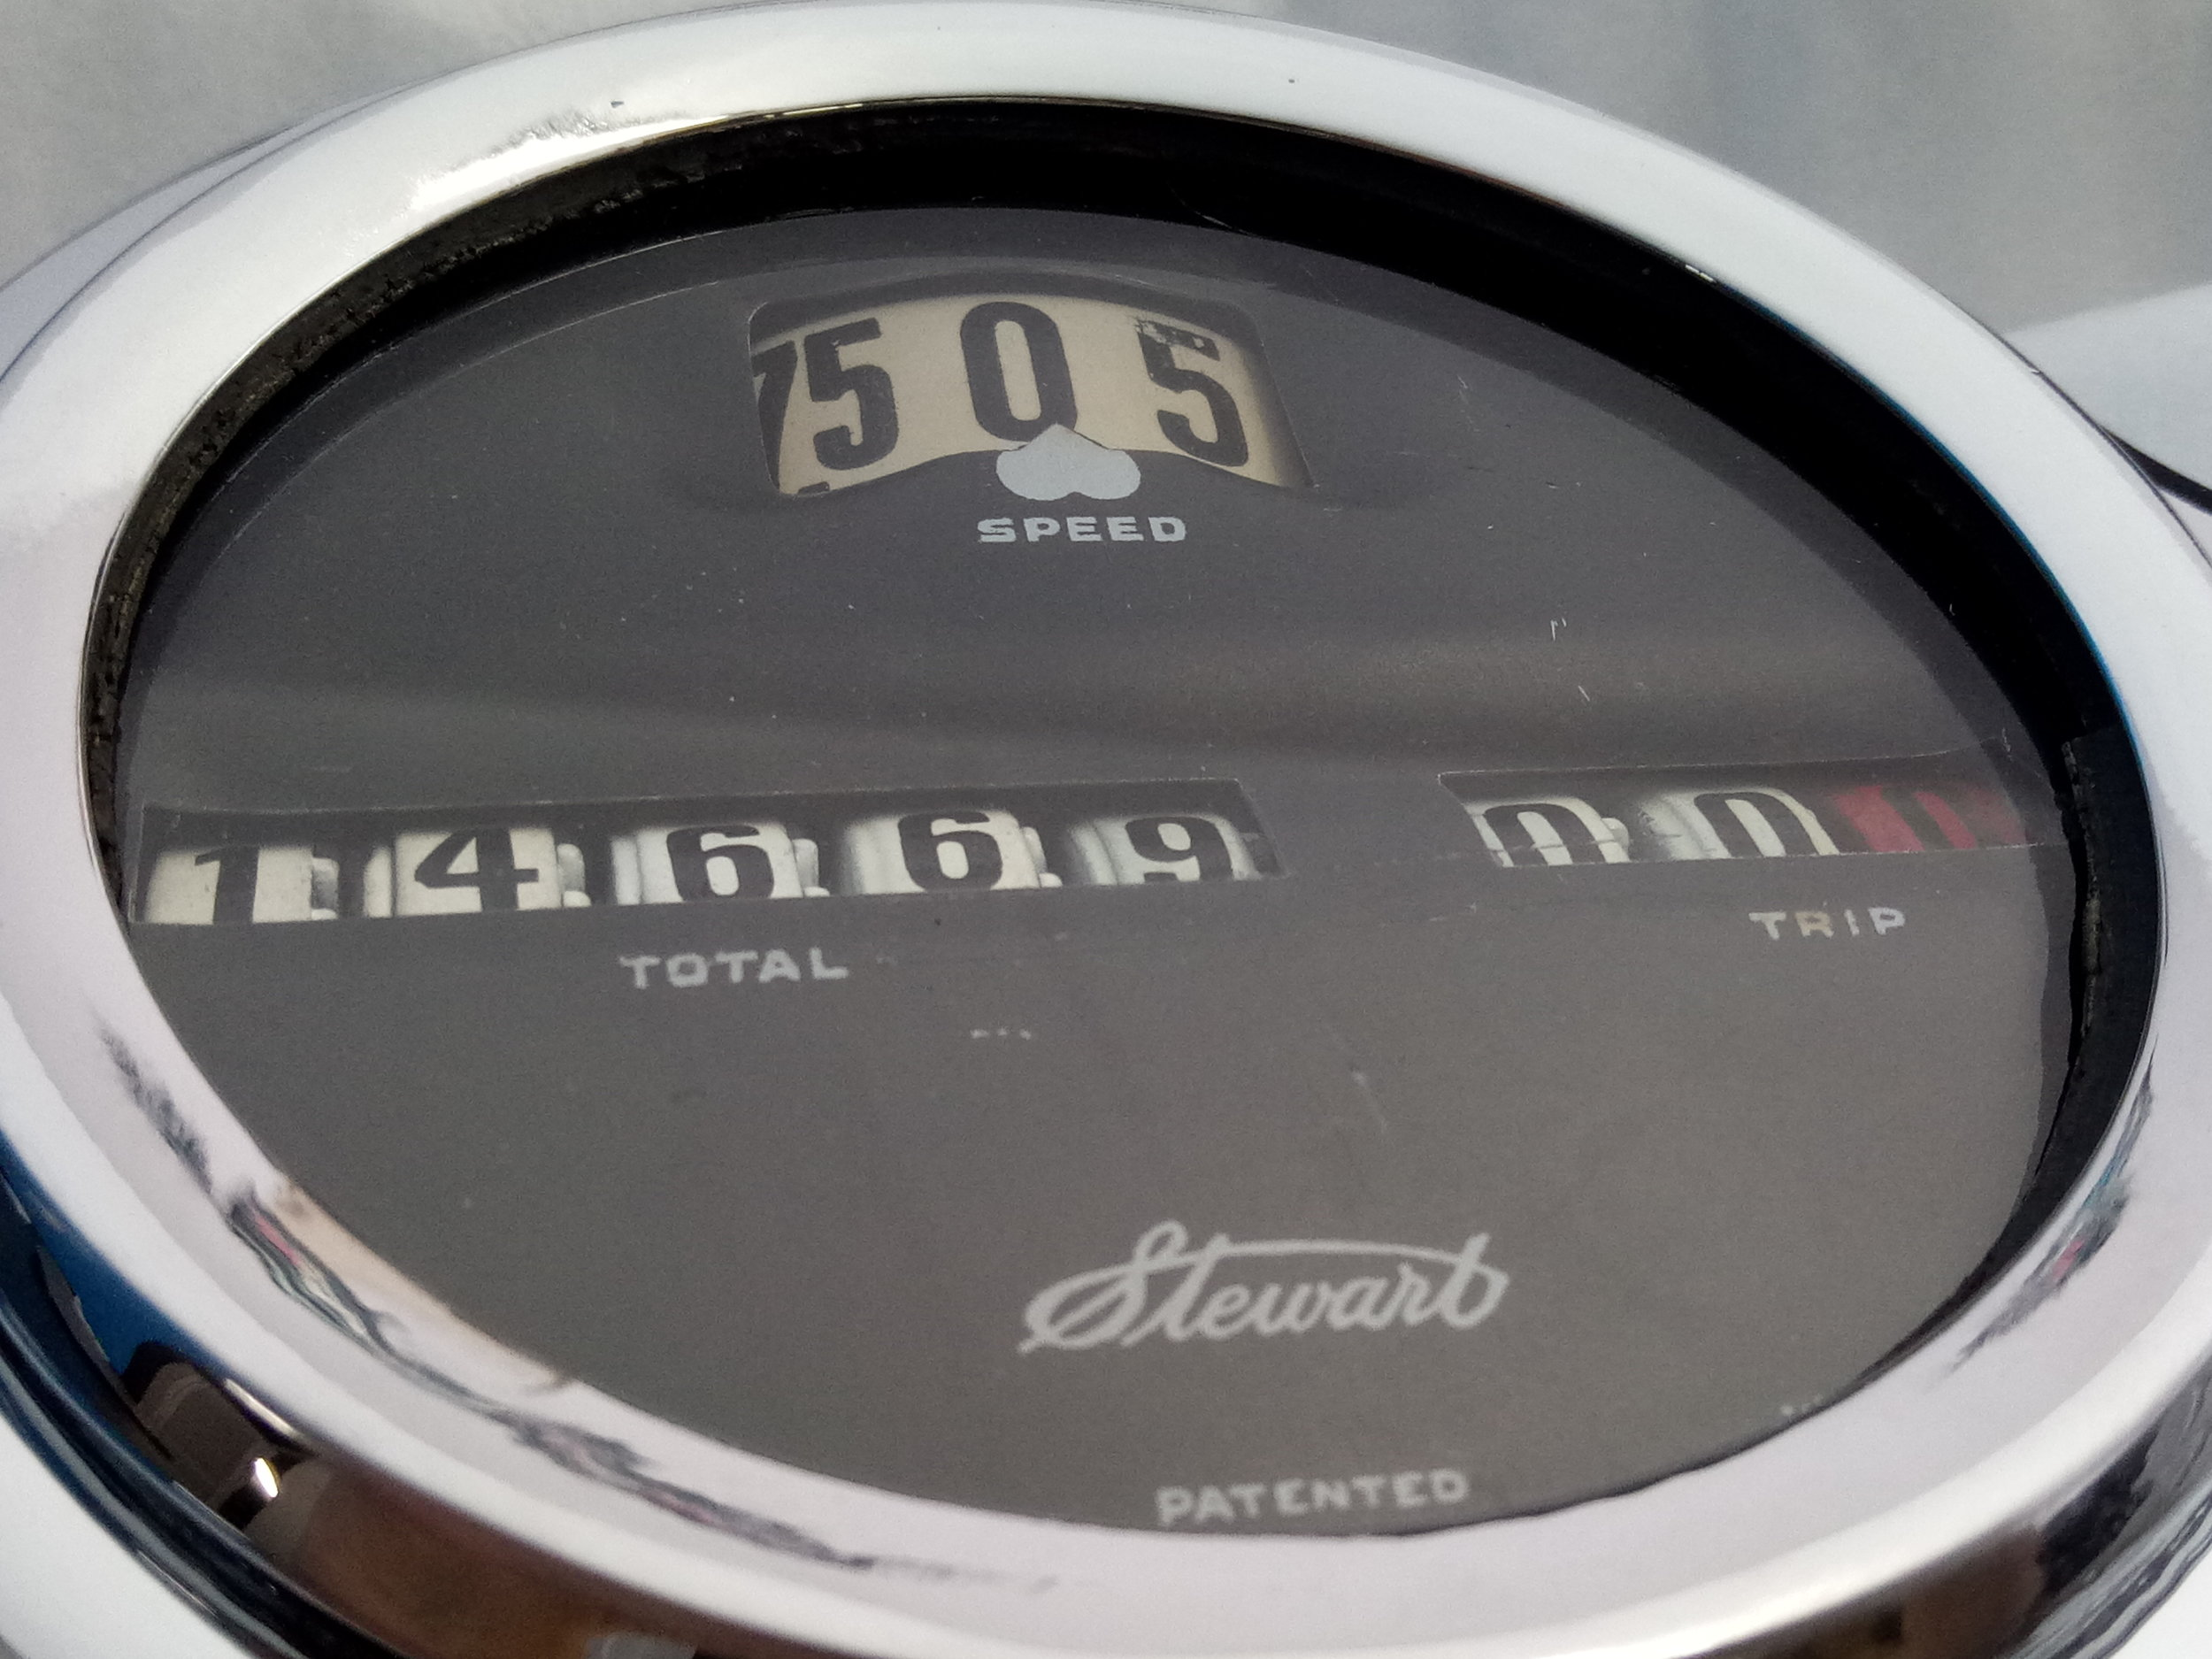 After restoration - new numbers used across speed indicator wheel and odometer